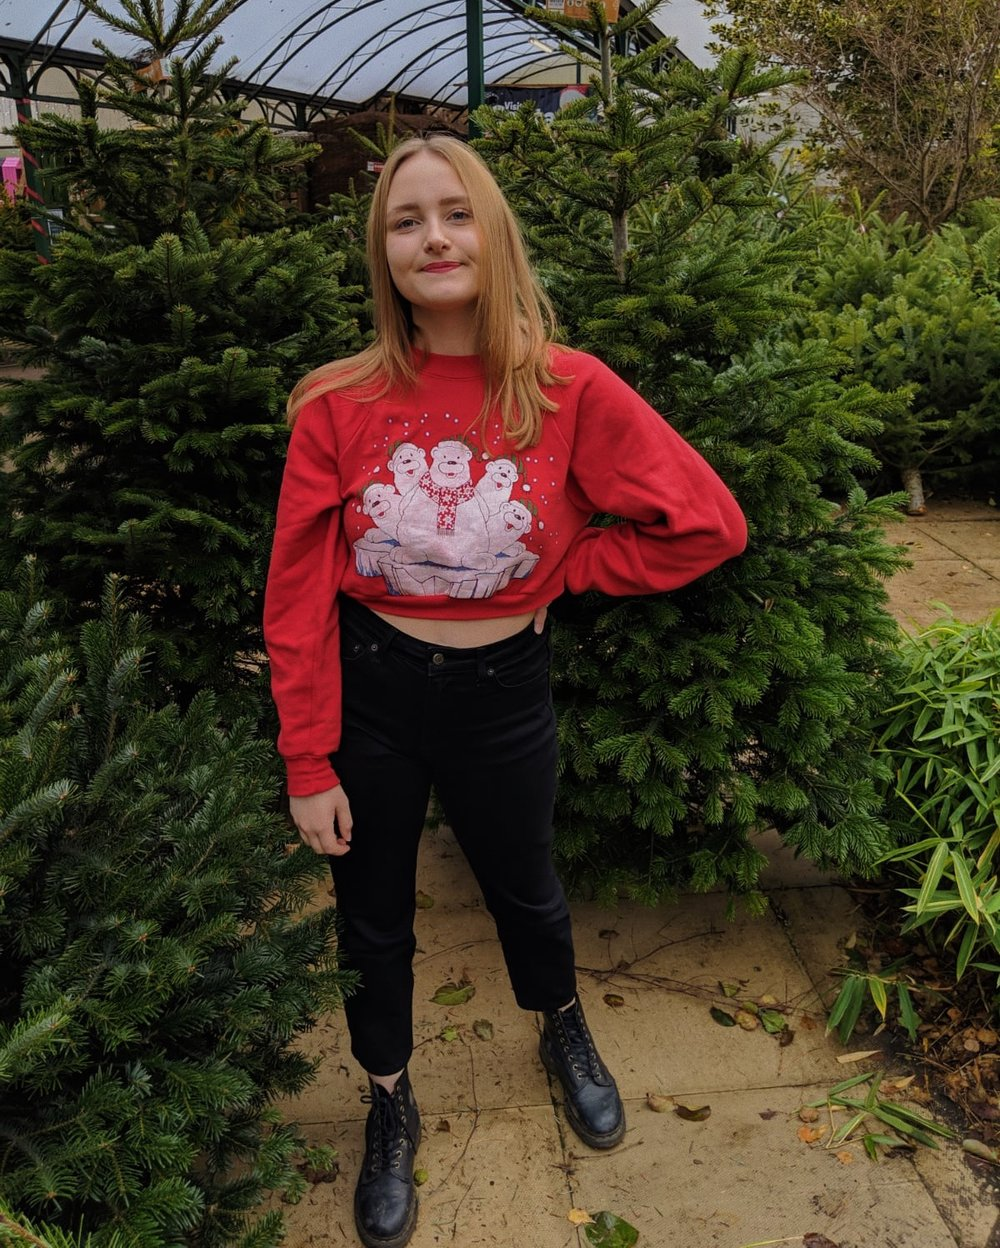 Jumper- COW Vintage  Jeans-  Topshop (Bought on Depop)   Shoes-  Vegan Dr Martens    *some links used are affiliate which means I receive a tiny amount of commission based on clicks